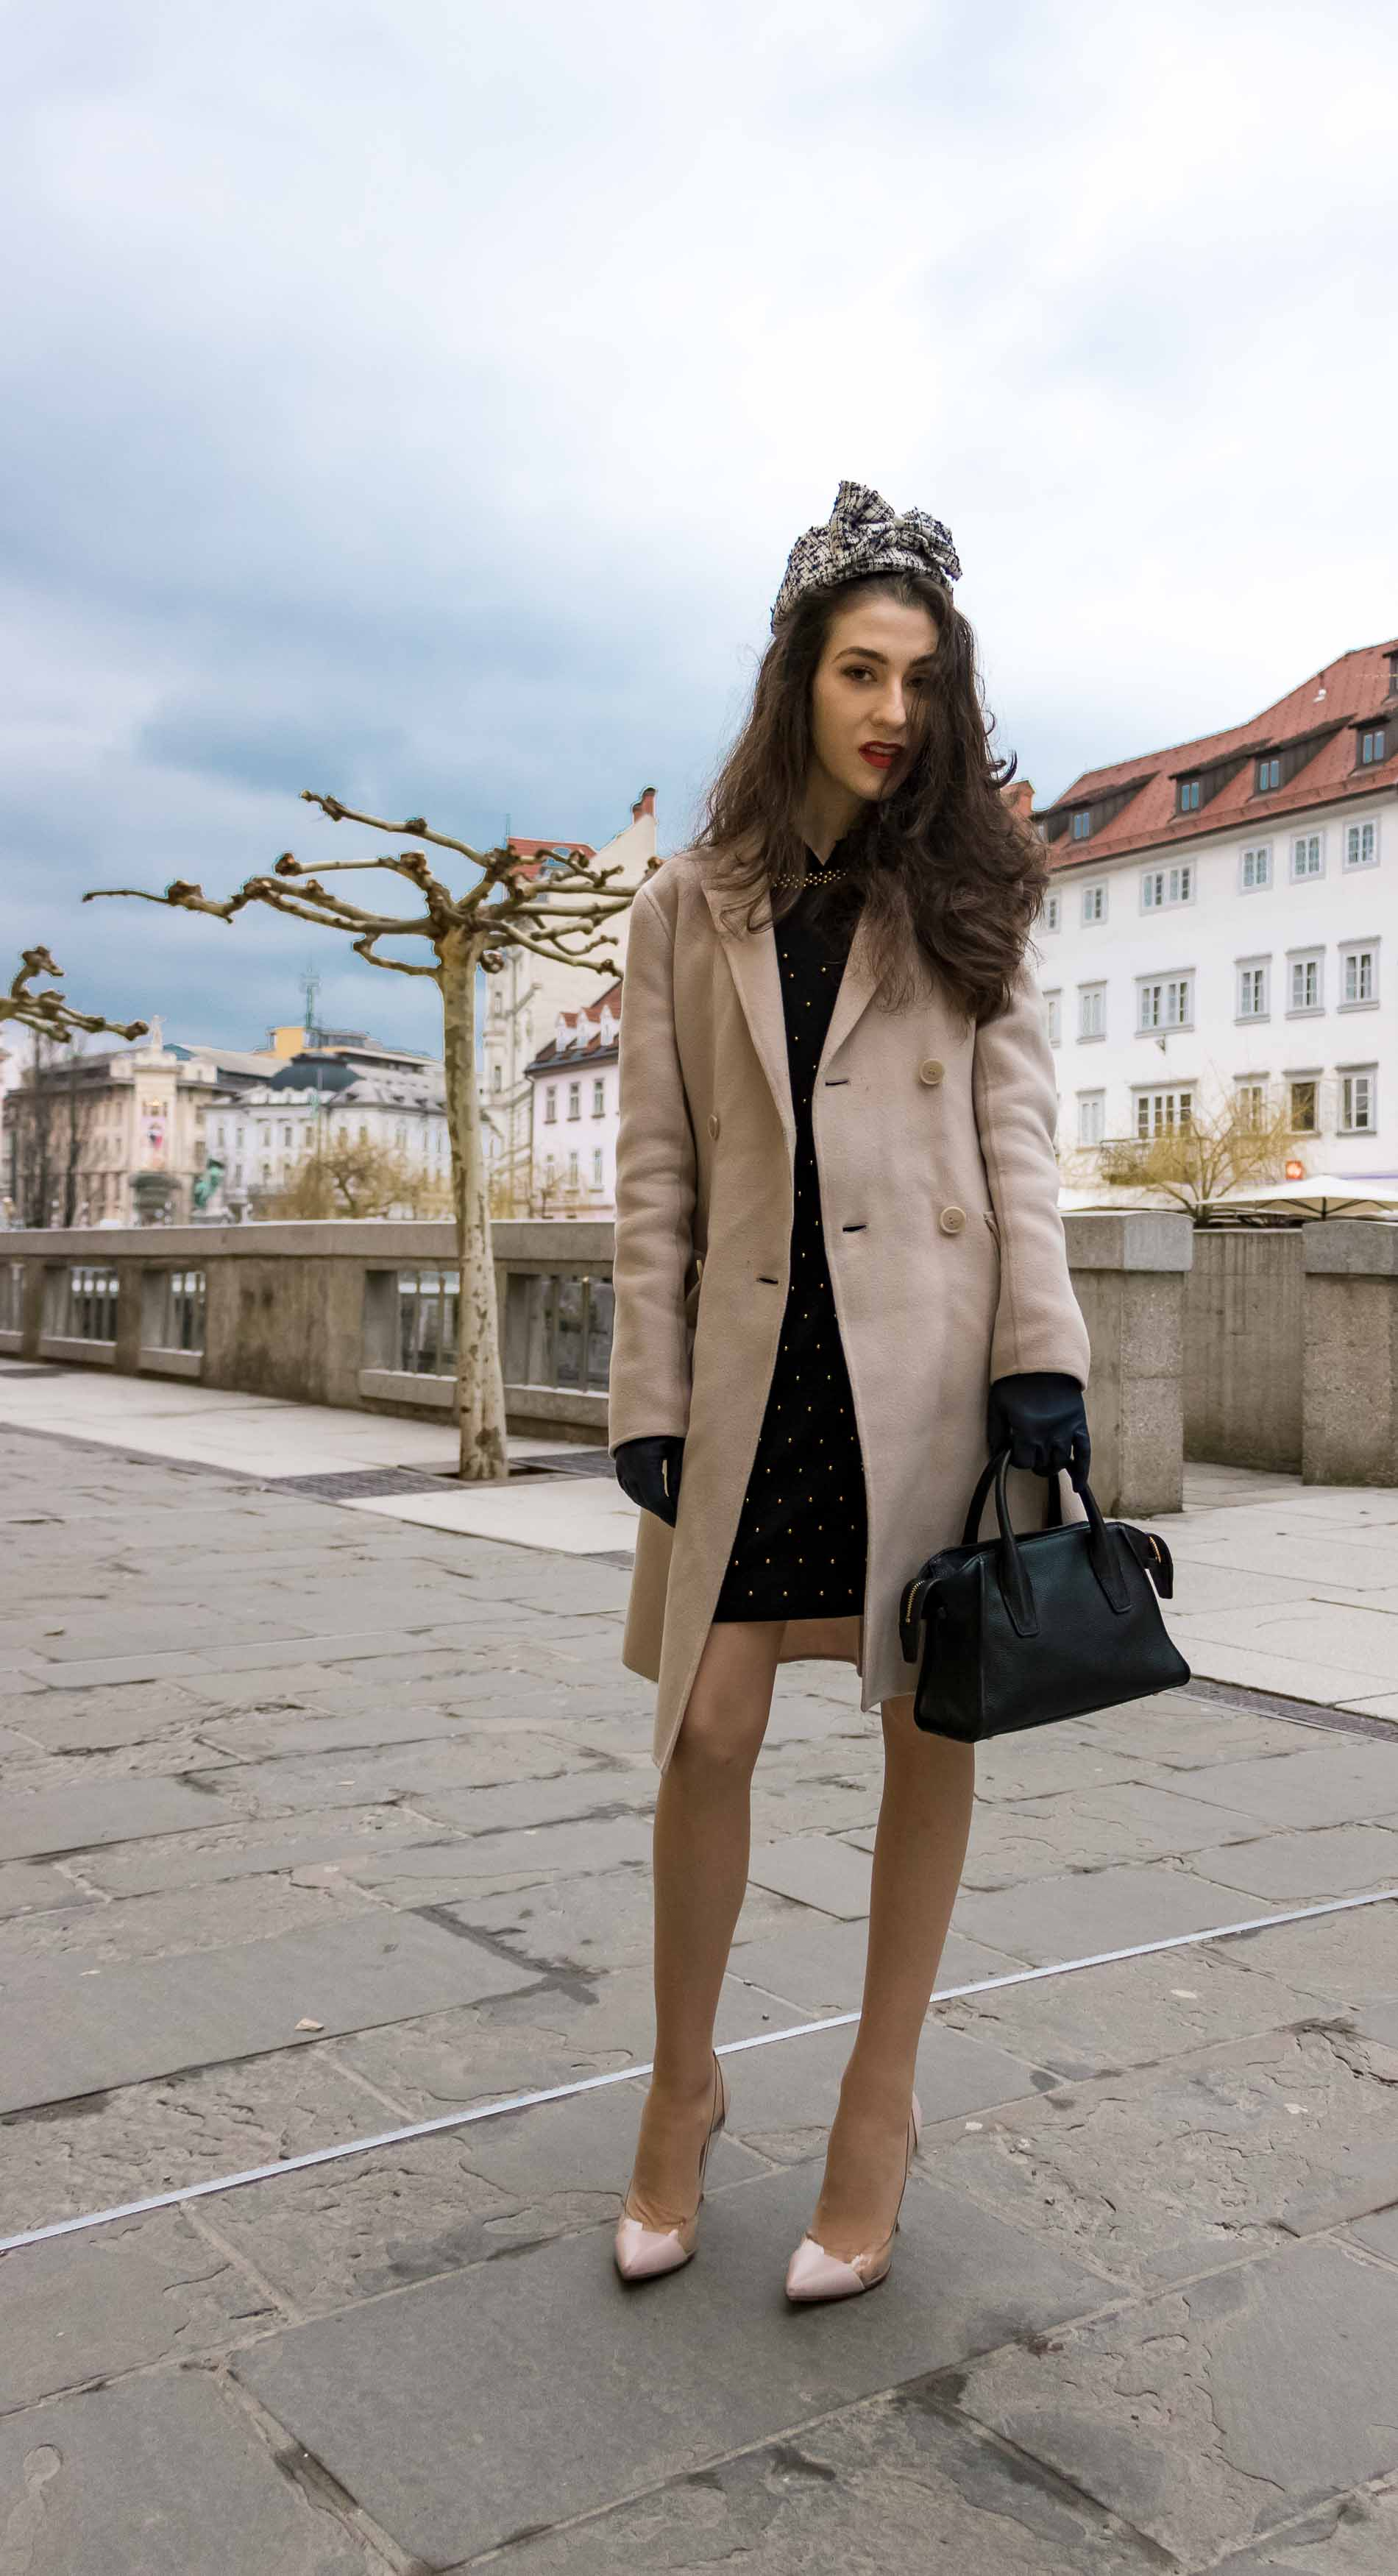 Fashion Blogger Veronika Lipar of Brunette from Wall Street dressed in Weekend Maxmara off-white pastel coat, Gianvito Rossi plexi pumps, small black top handle bag and headwear on the street for Easter holidays before Sunday Mass